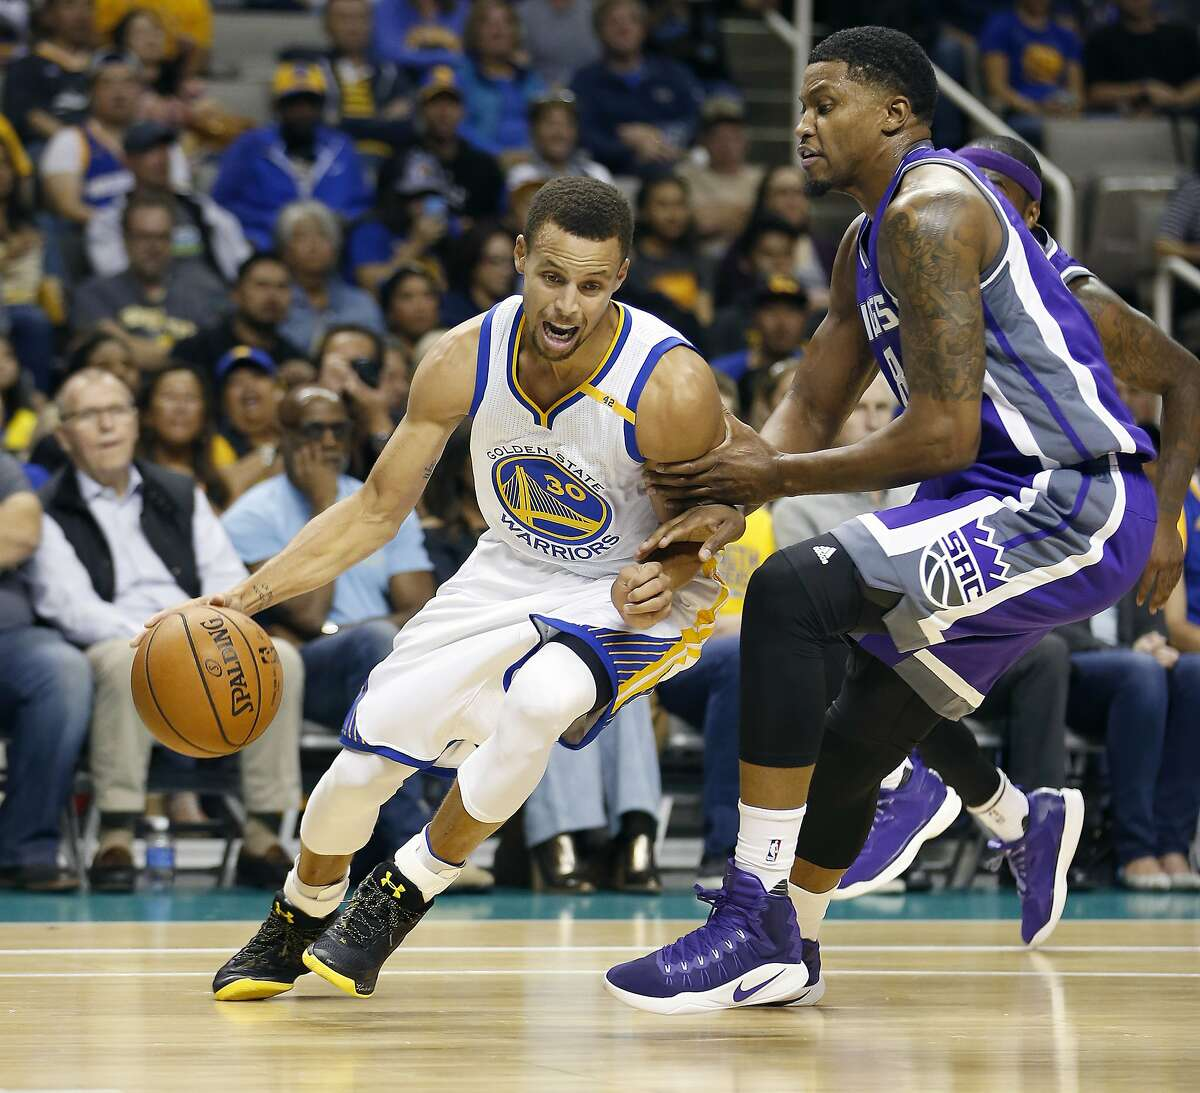 Golden State Warriors' Stephen Curry, left, drives to the basket against Sacramento Kings' Rudy Gay, right, during the first half of a preseason NBA basketball game Thursday, Oct. 6, 2016, in San Jose, Calif. (AP Photo/Tony Avelar)